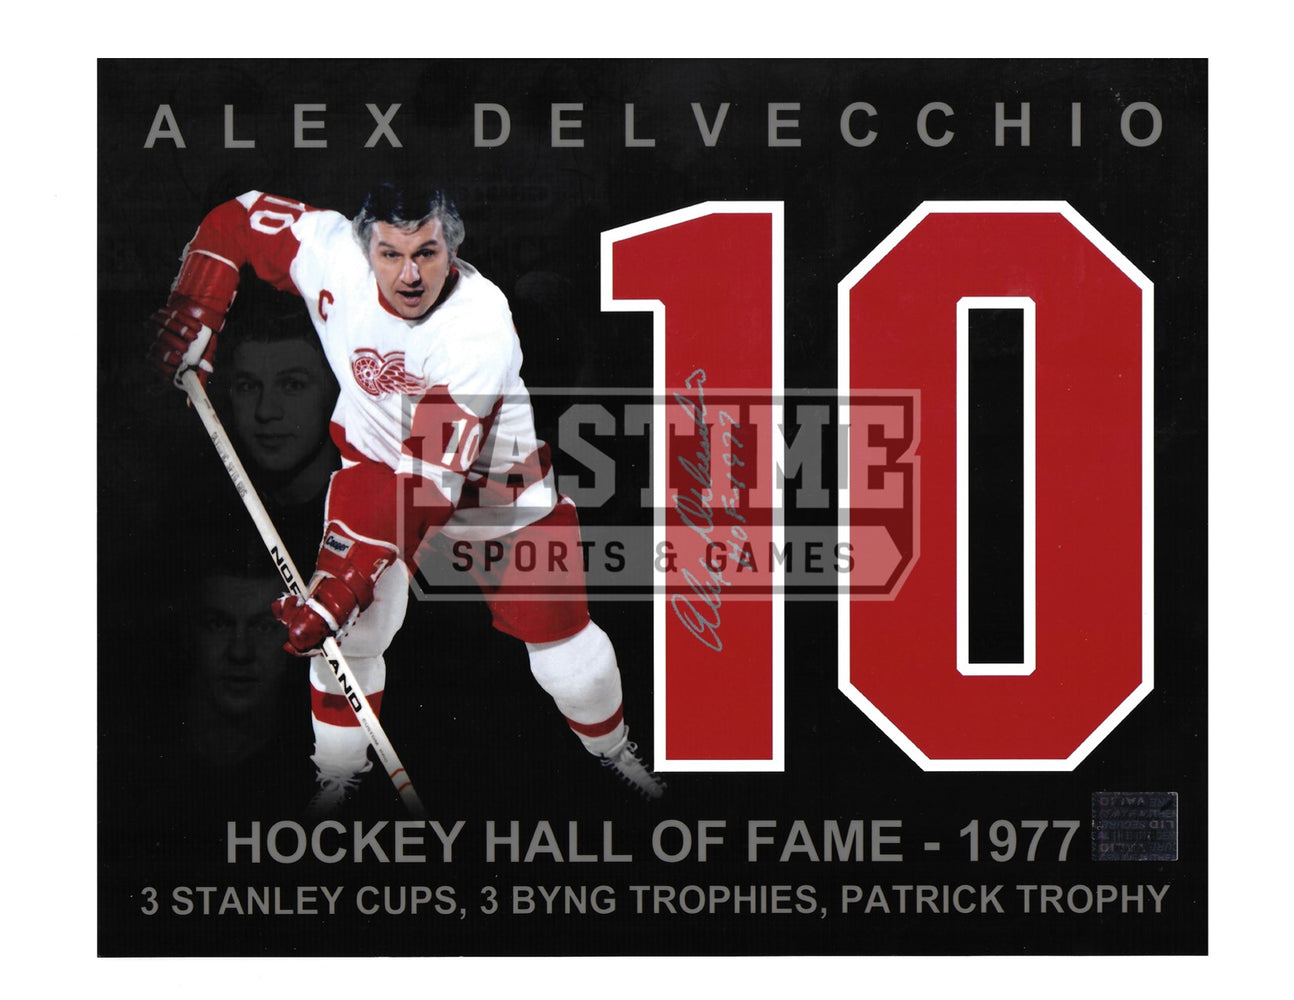 Alex Delvecchio Autographed 8X10 Detriot Red Wings Away Jersey (Hockey Hall Of Fame) - Pastime Sports & Games